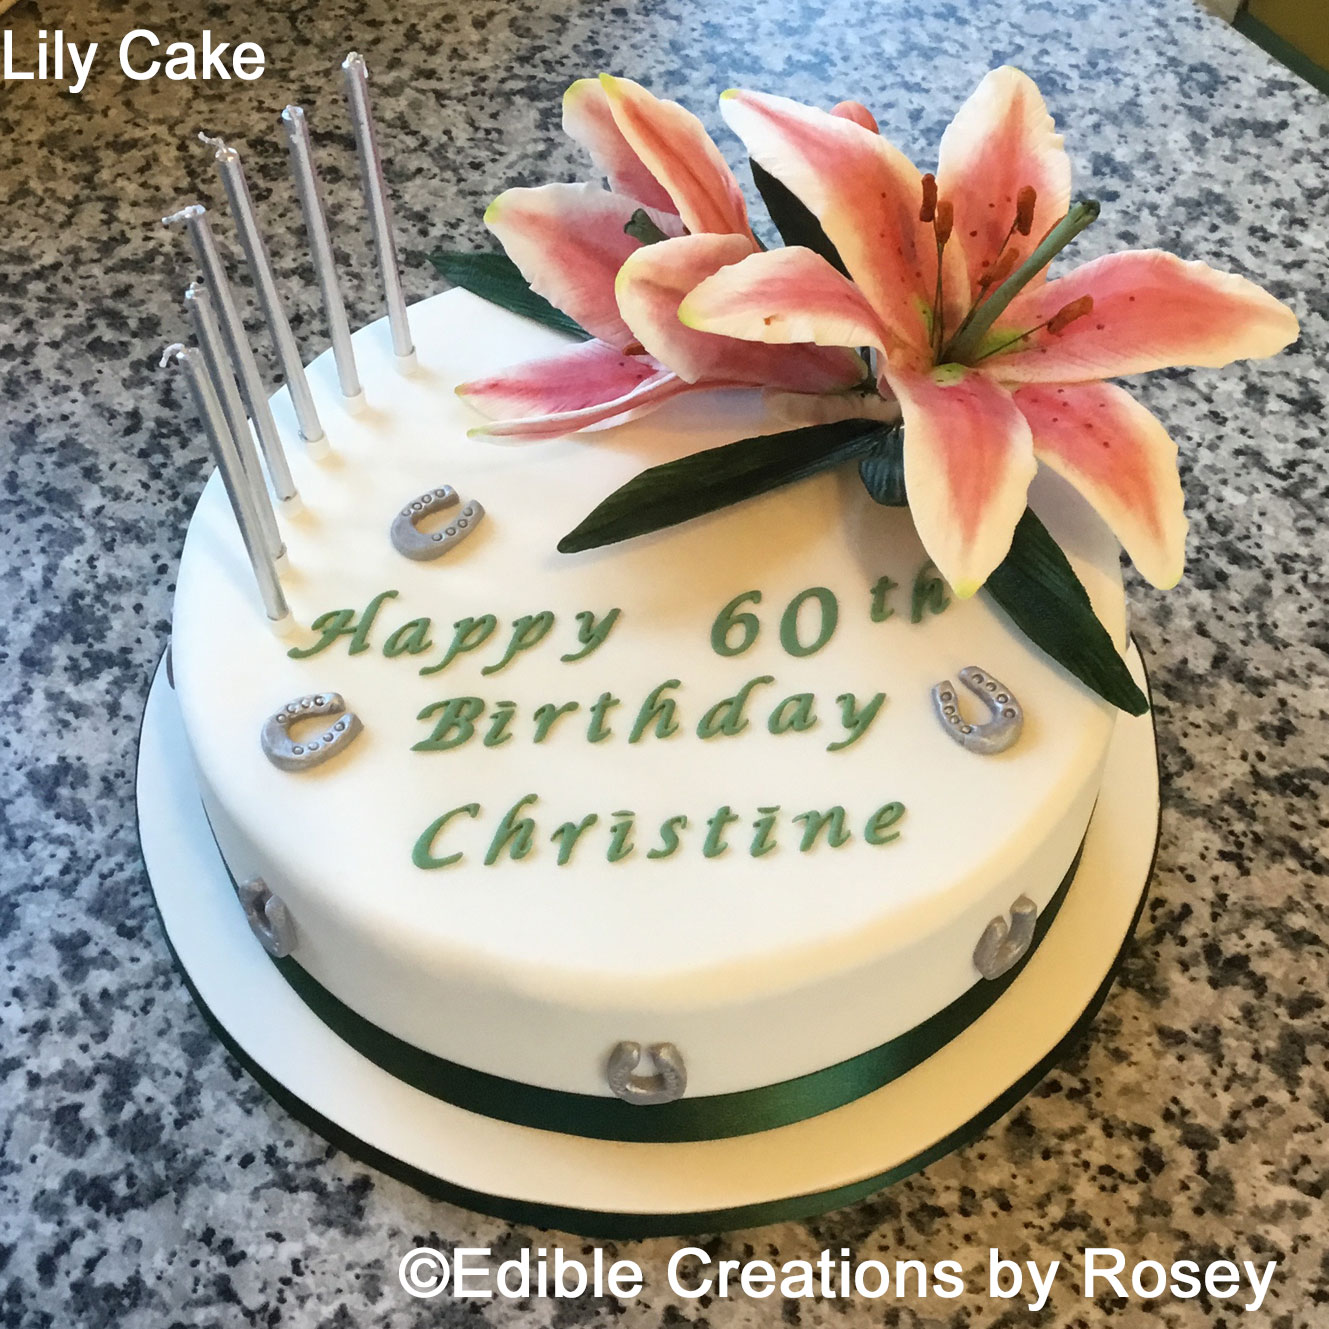 Reviews On Edible Creations By Rosey